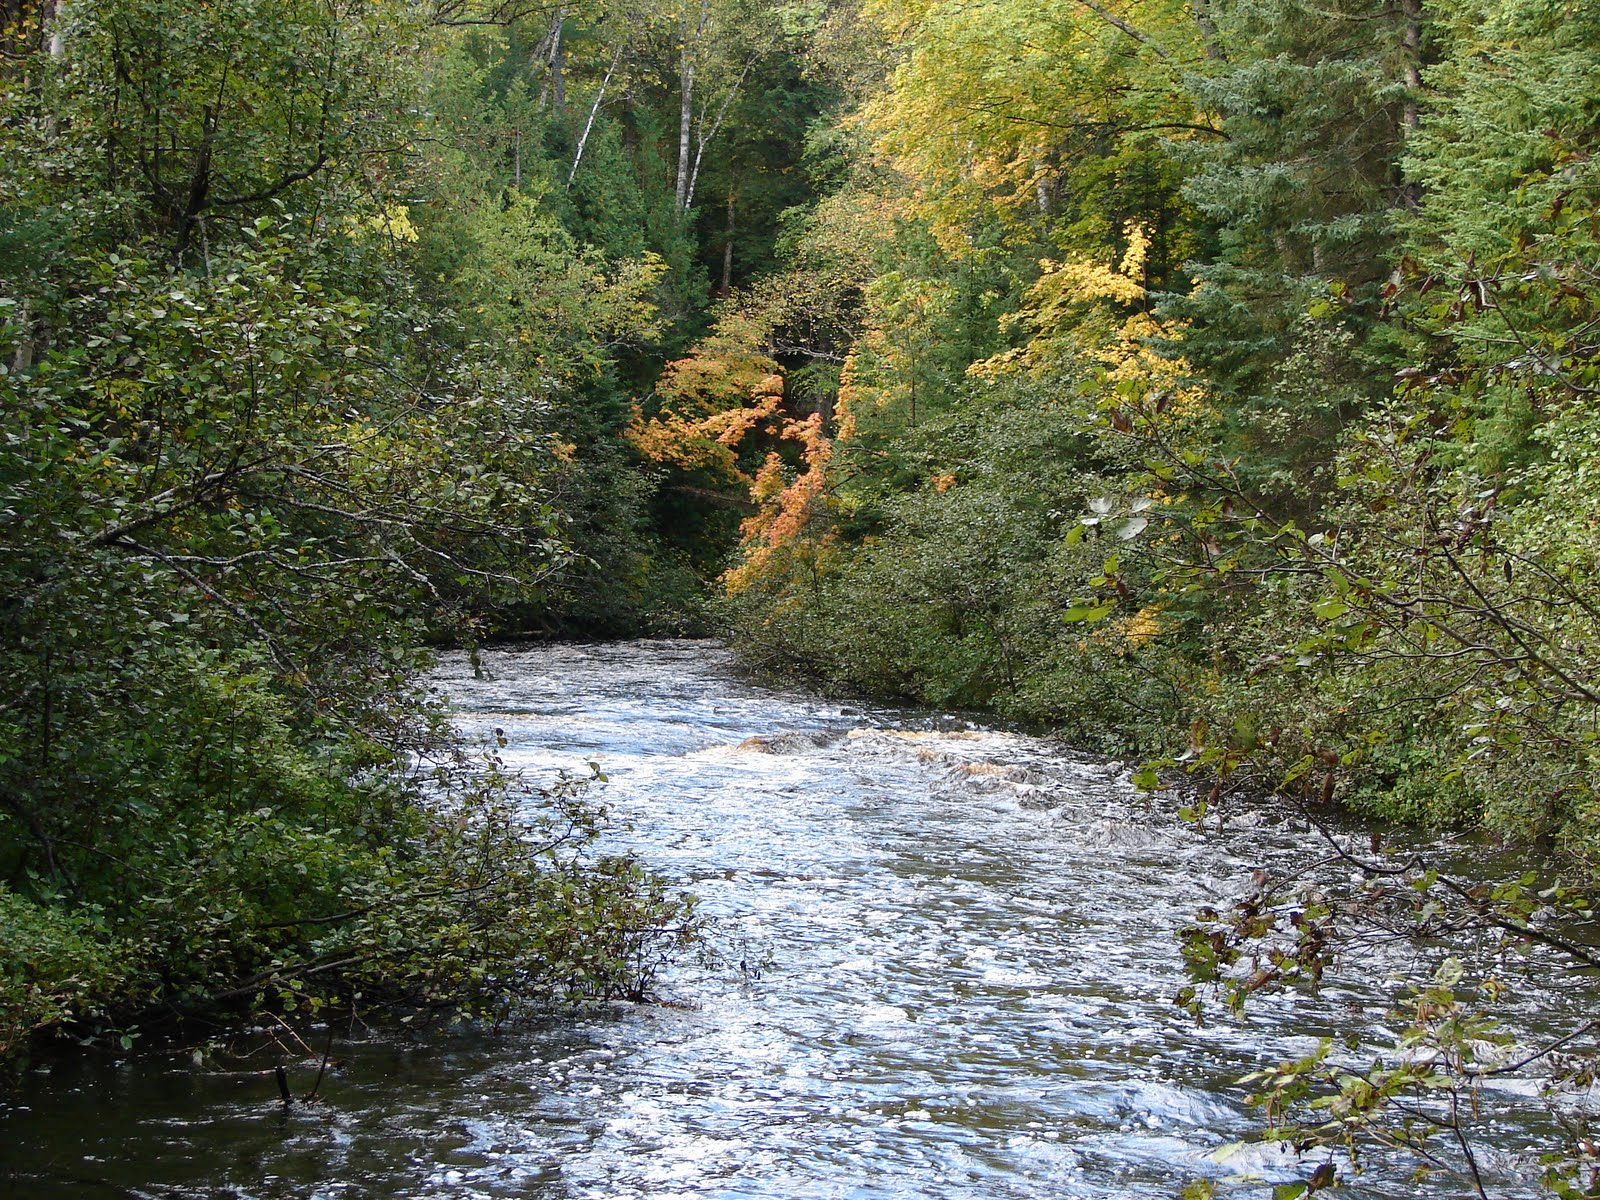 """big two hearted river essay example Free essay: in ernest hemmingway's """"big two-hearted river"""", nick returns home after the war and visits a favorite fishing spot dual sides of nick are shown."""